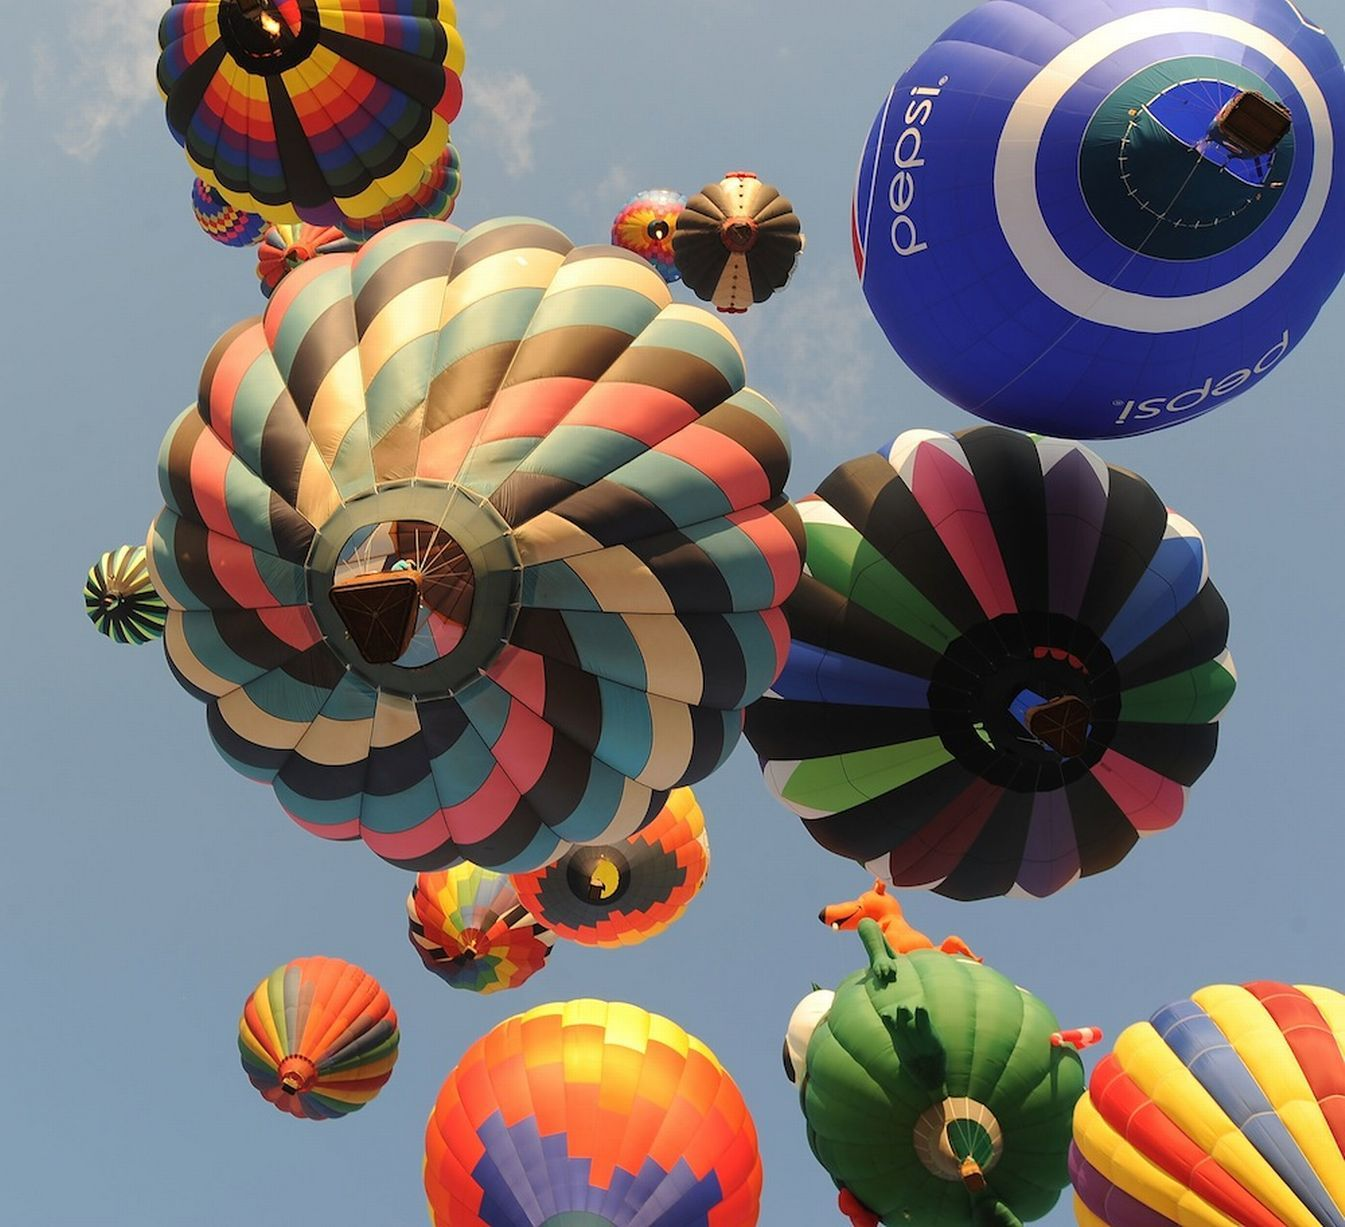 Stunning themed hot air balloon pictures will take your